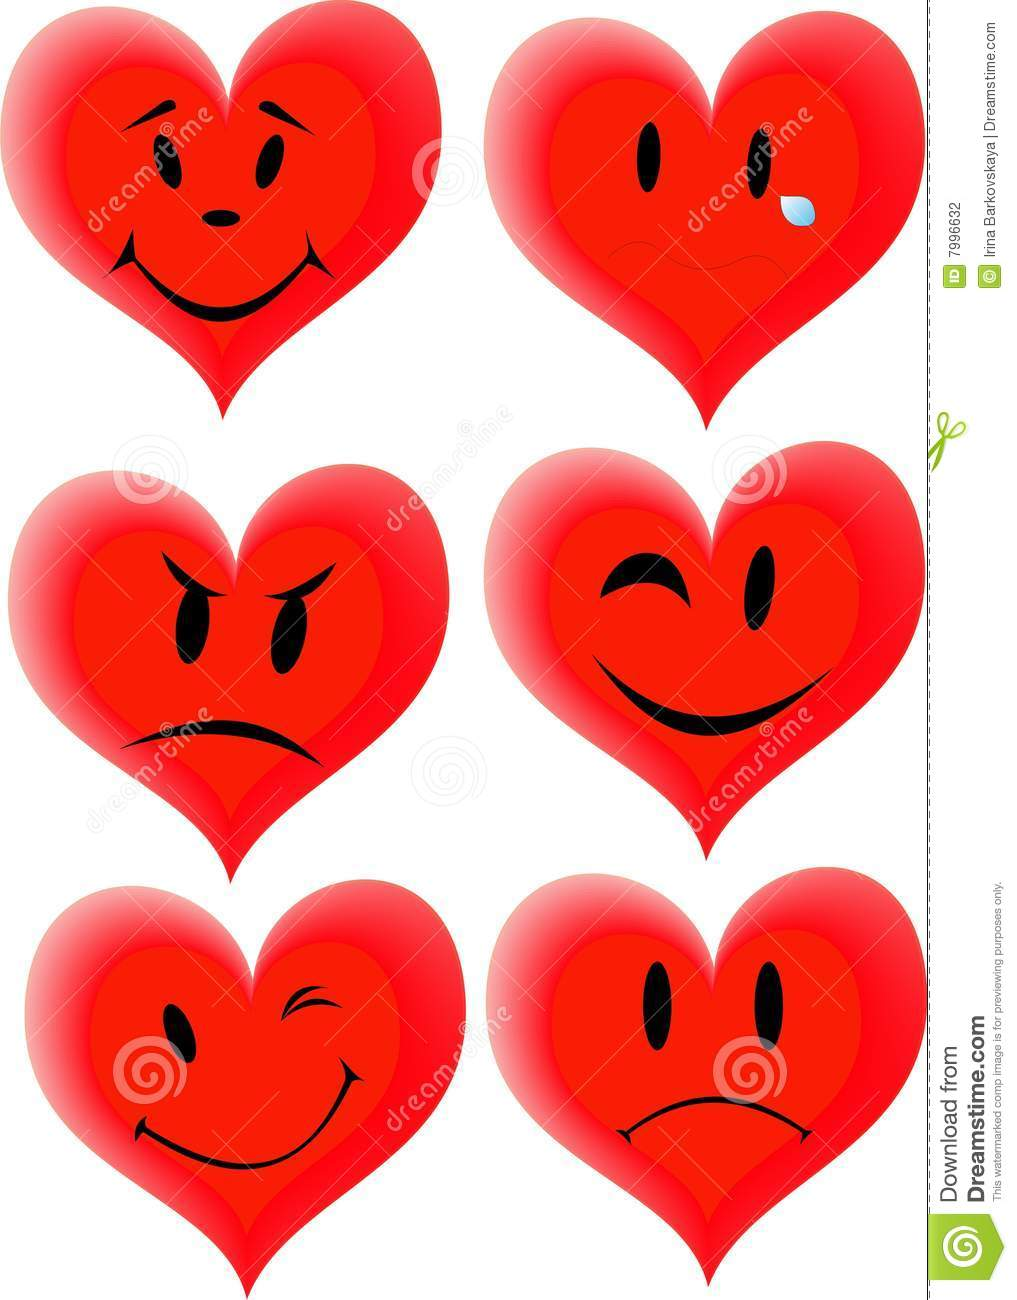 Free download of Heart Corel Draw vector graphics and